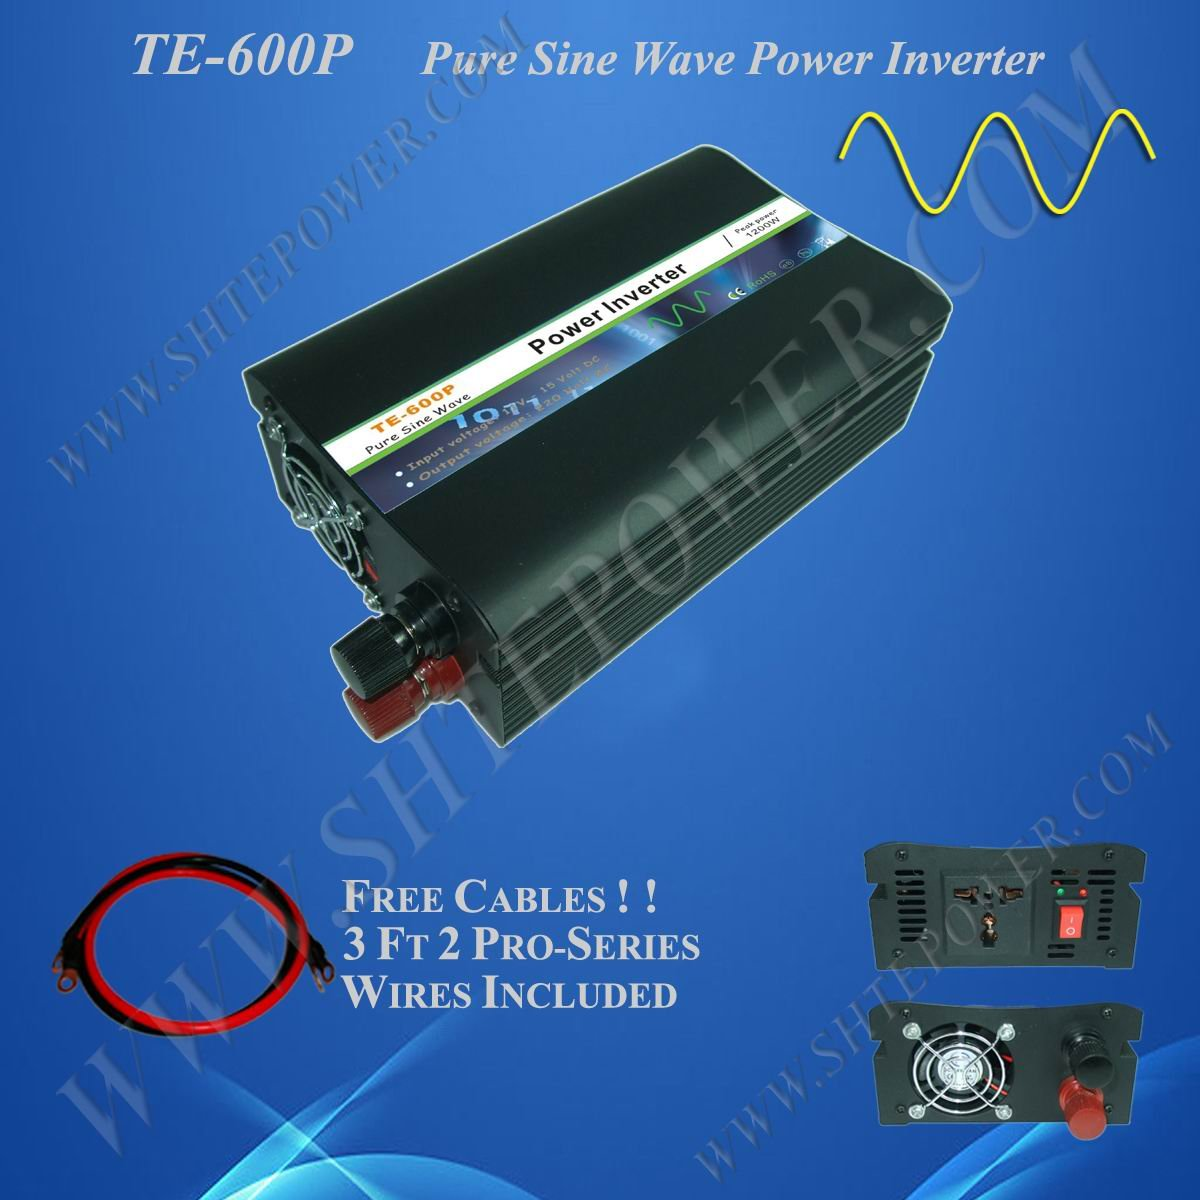 купить Off Grid Solar Power Inverter, 600w 24vdc to 120vac inverter, Pure Sine Wave Power Invertor по цене 6559.04 рублей